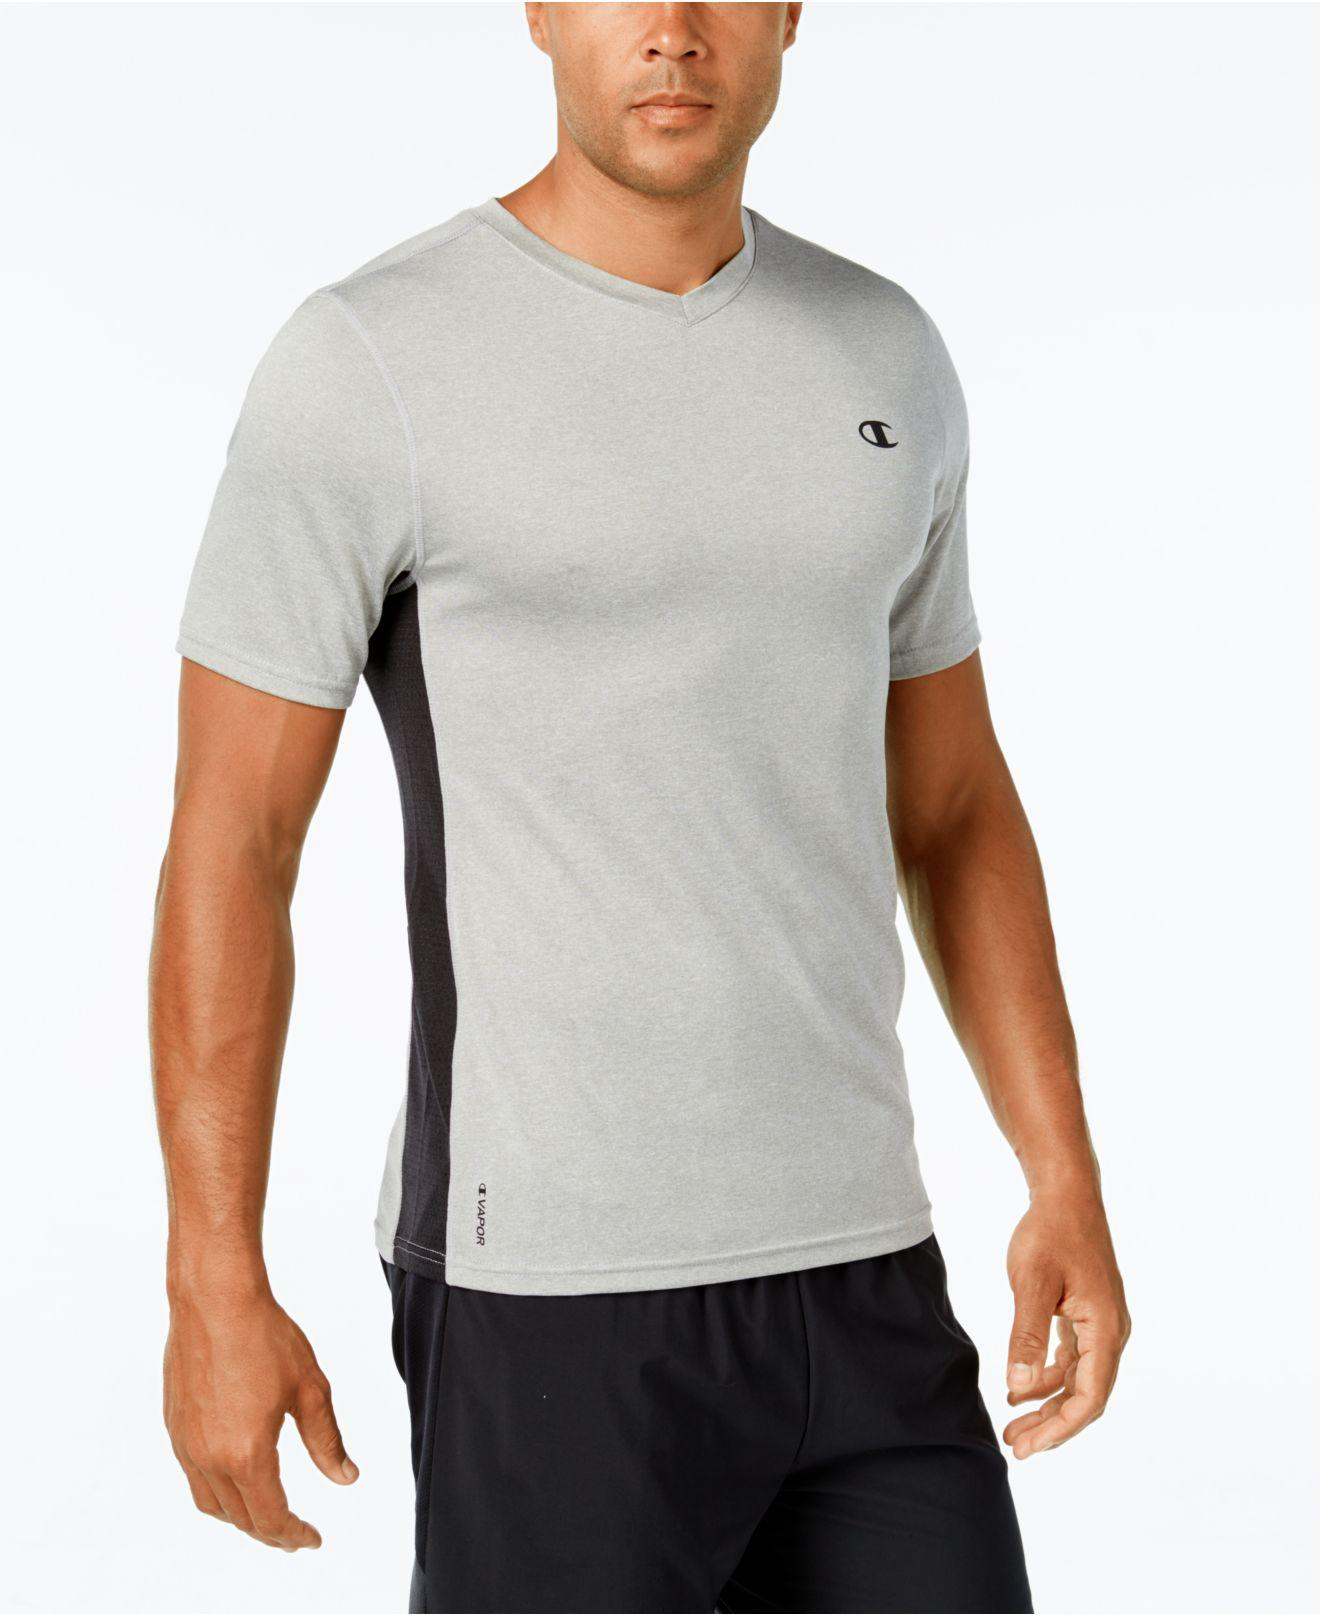 f5c03d7d Lyst - Champion Men's Vapor Heathered V-neck T-shirt in Gray for Men